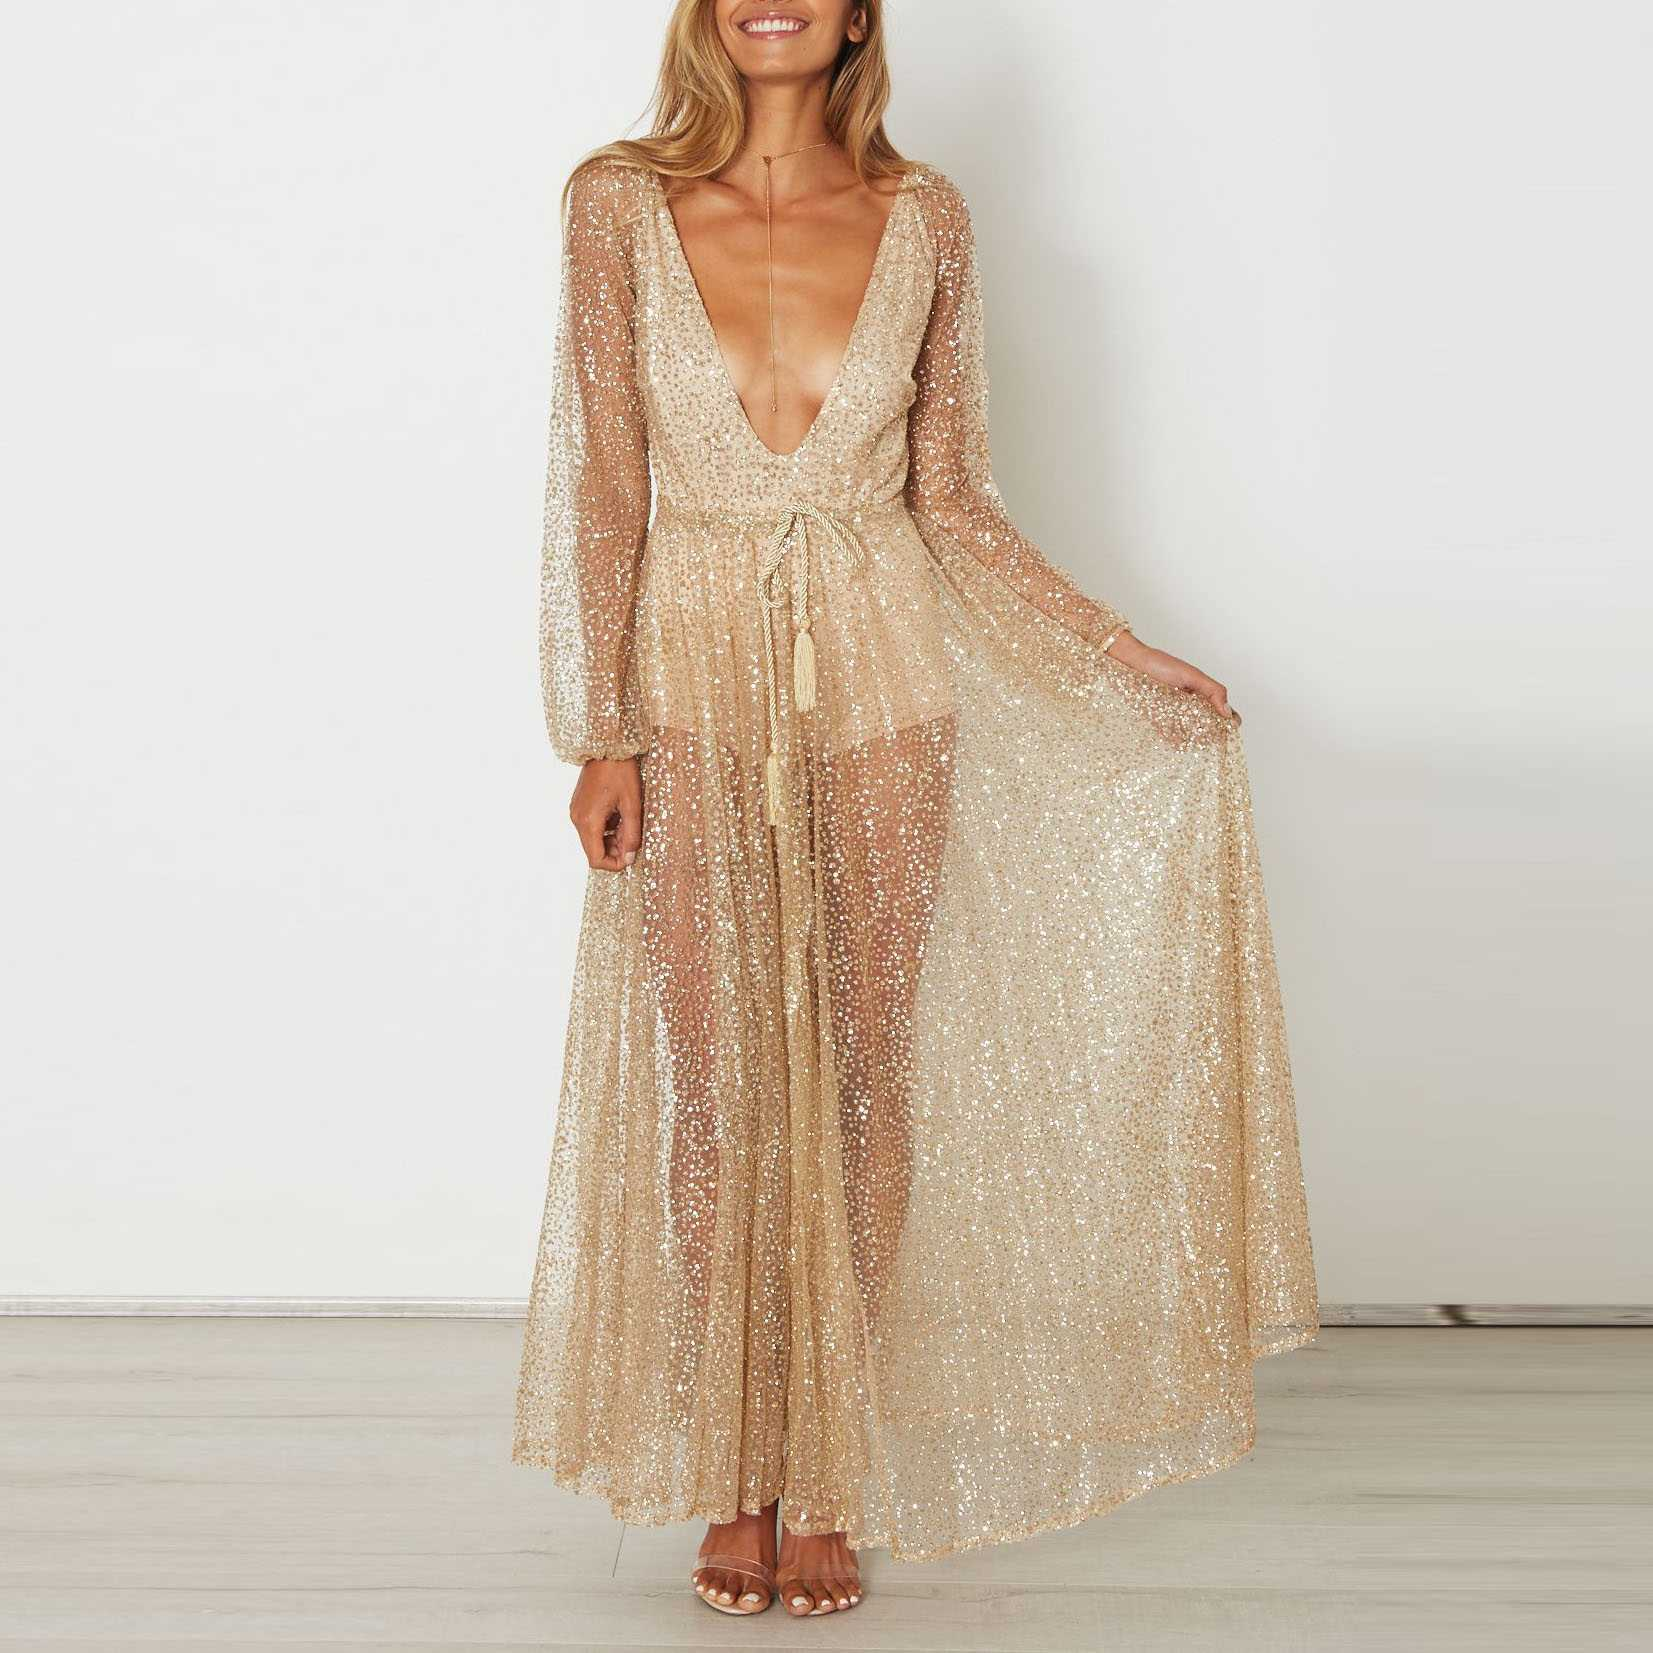 Gitter Sequins Deep Plunge Tie Waist Long Sleeve Sheer Mesh Dress